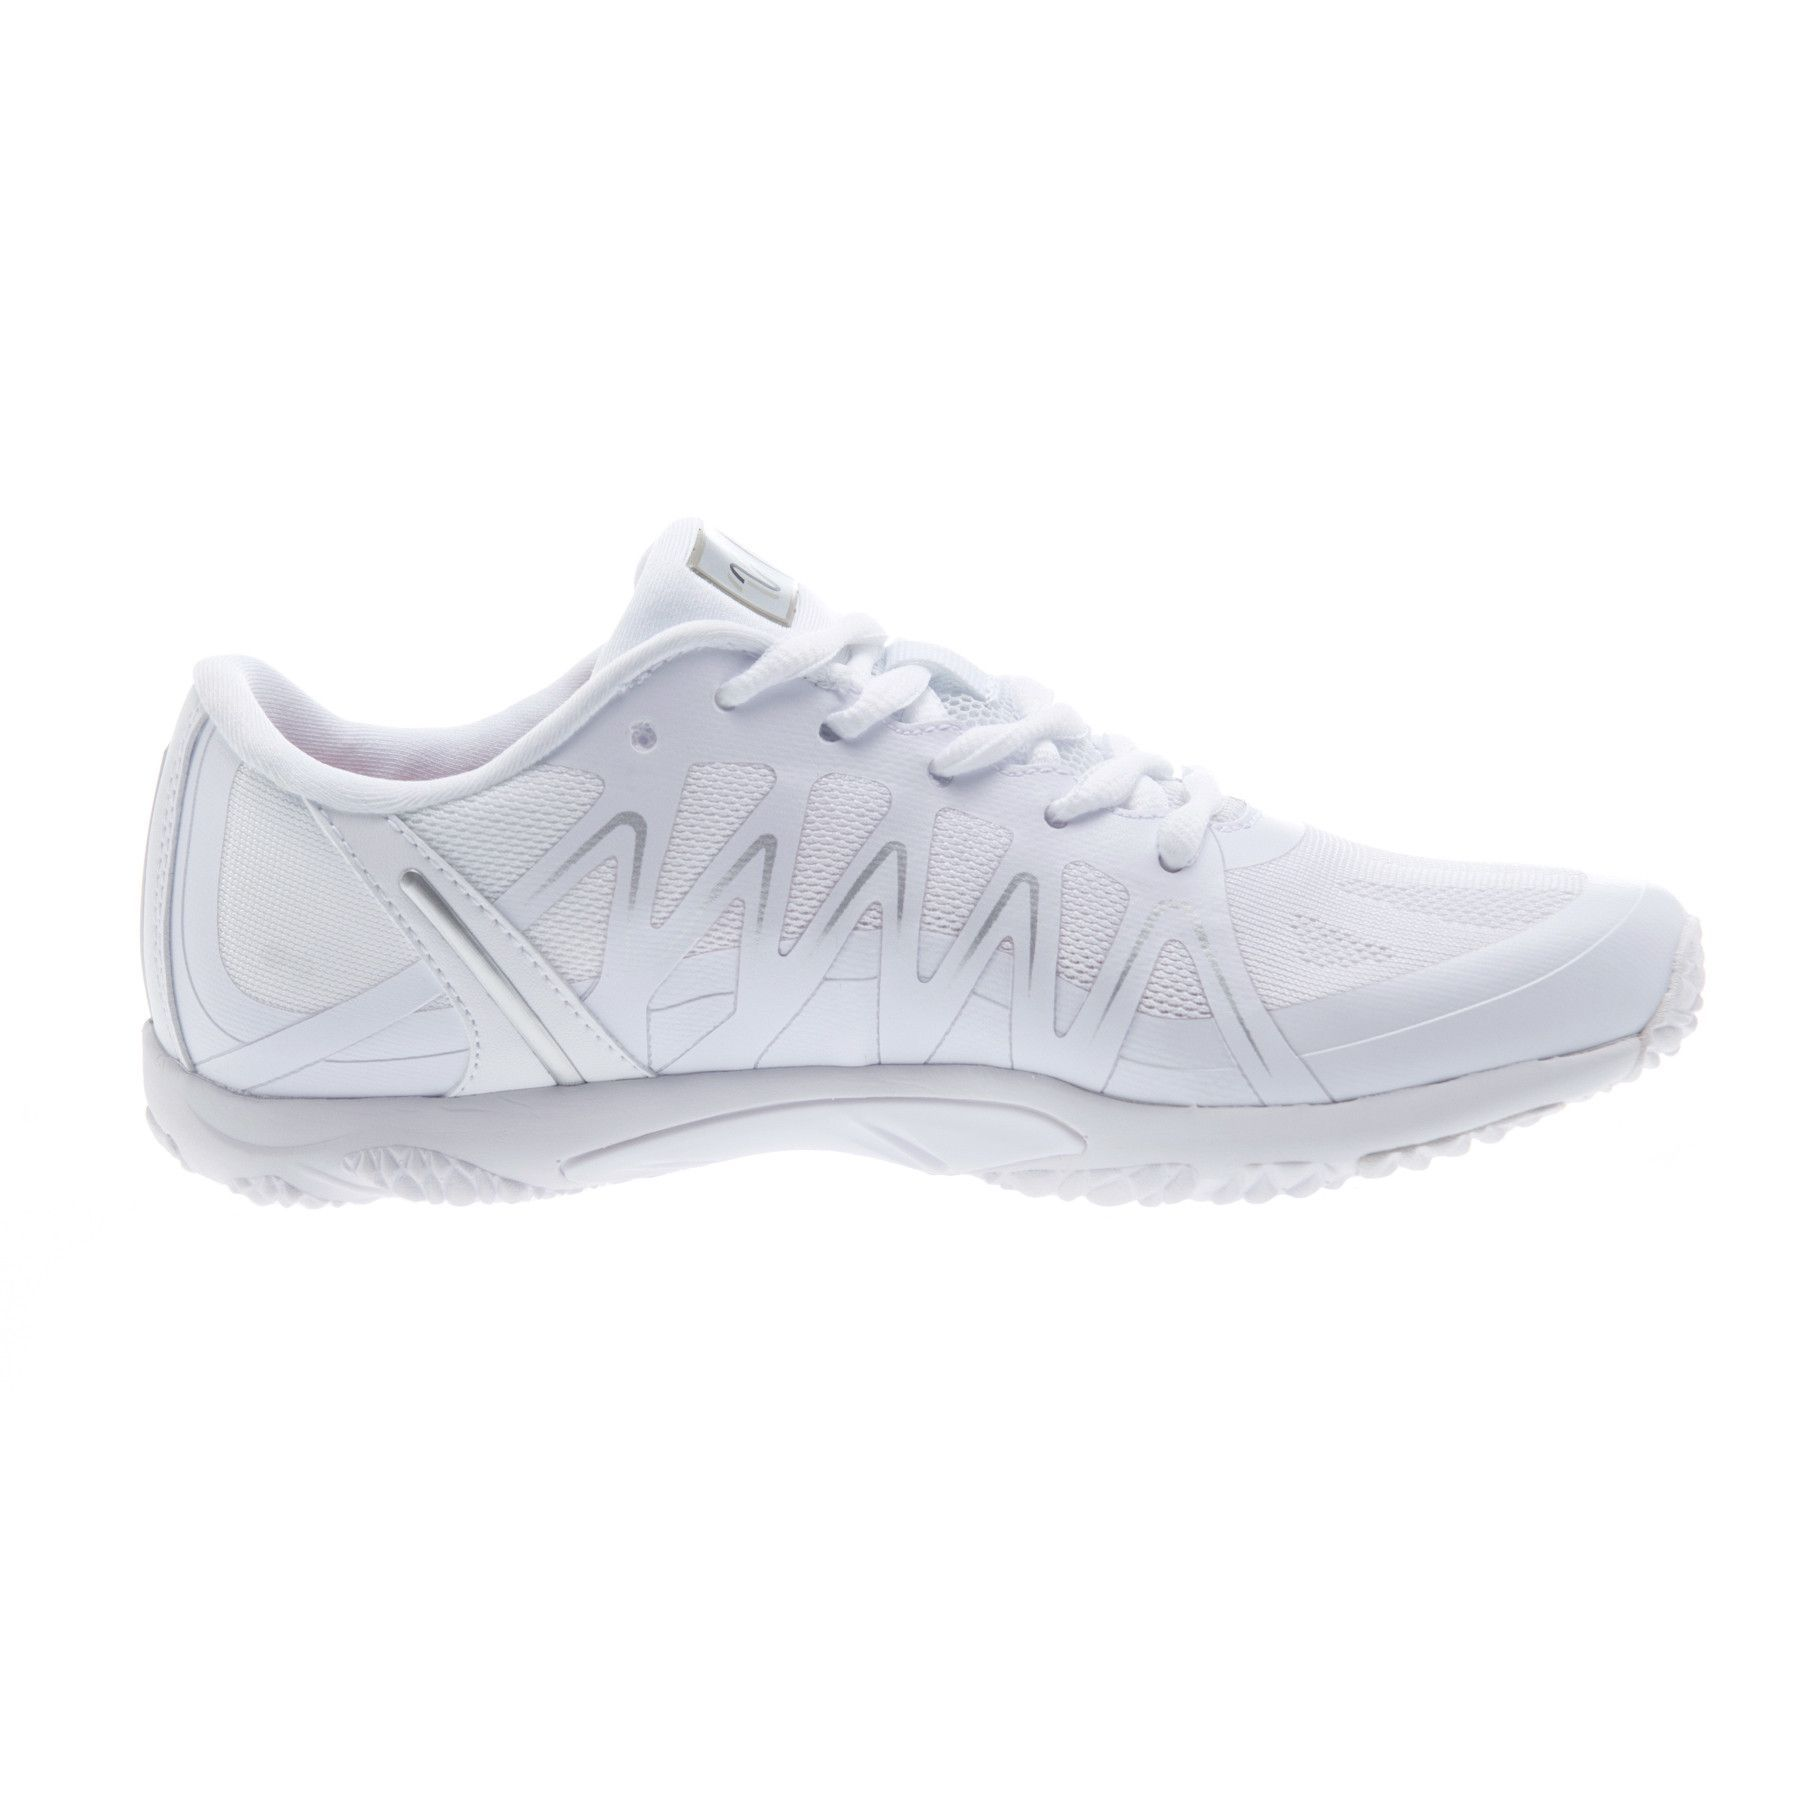 Varsity Edge Cheer Shoes Cheer Cheer Shoes Cheerleading